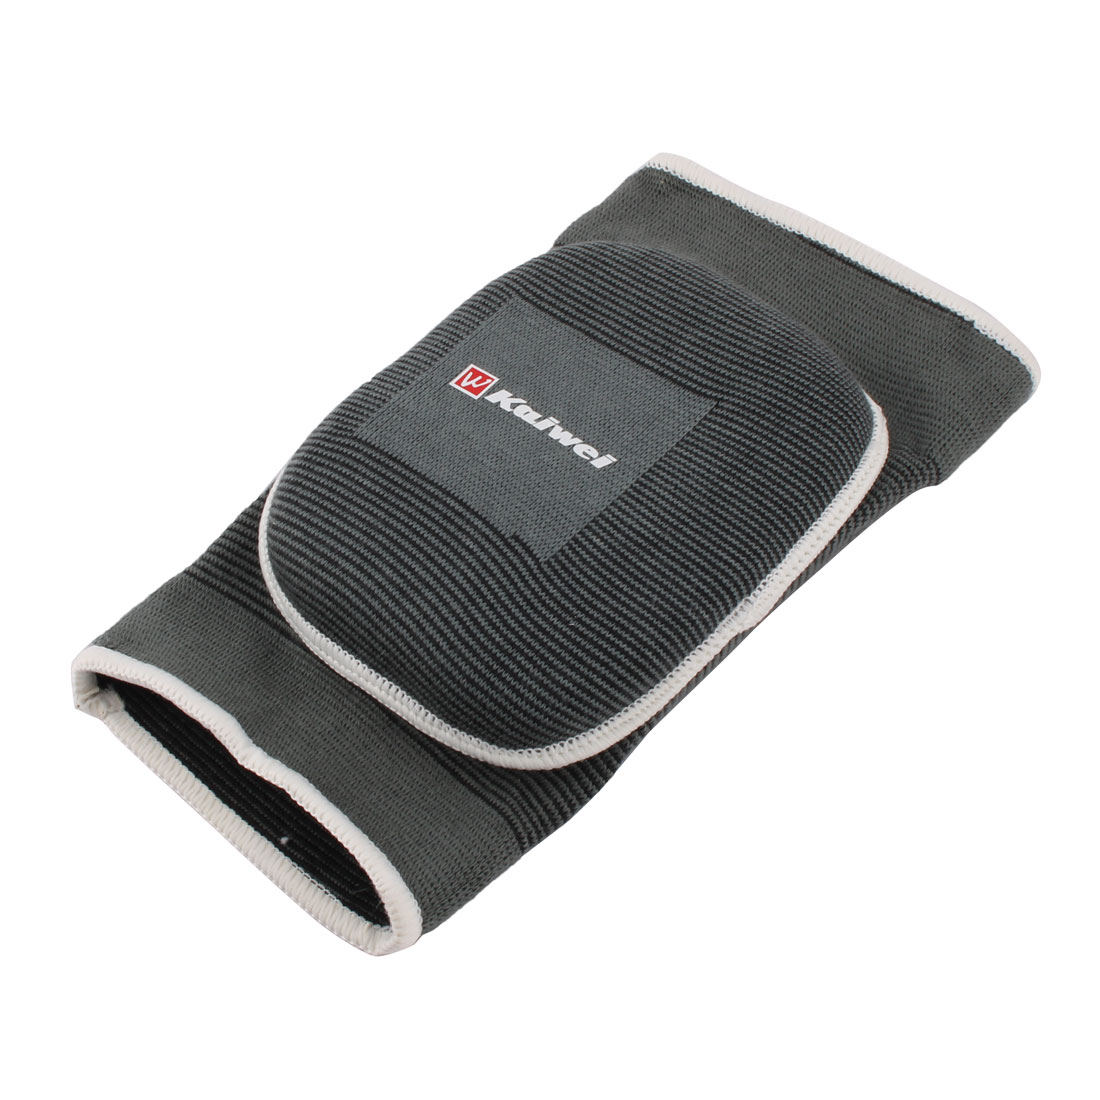 Sponge Padding Sports Knee Brace Support Kneepad Joint Patella Protector